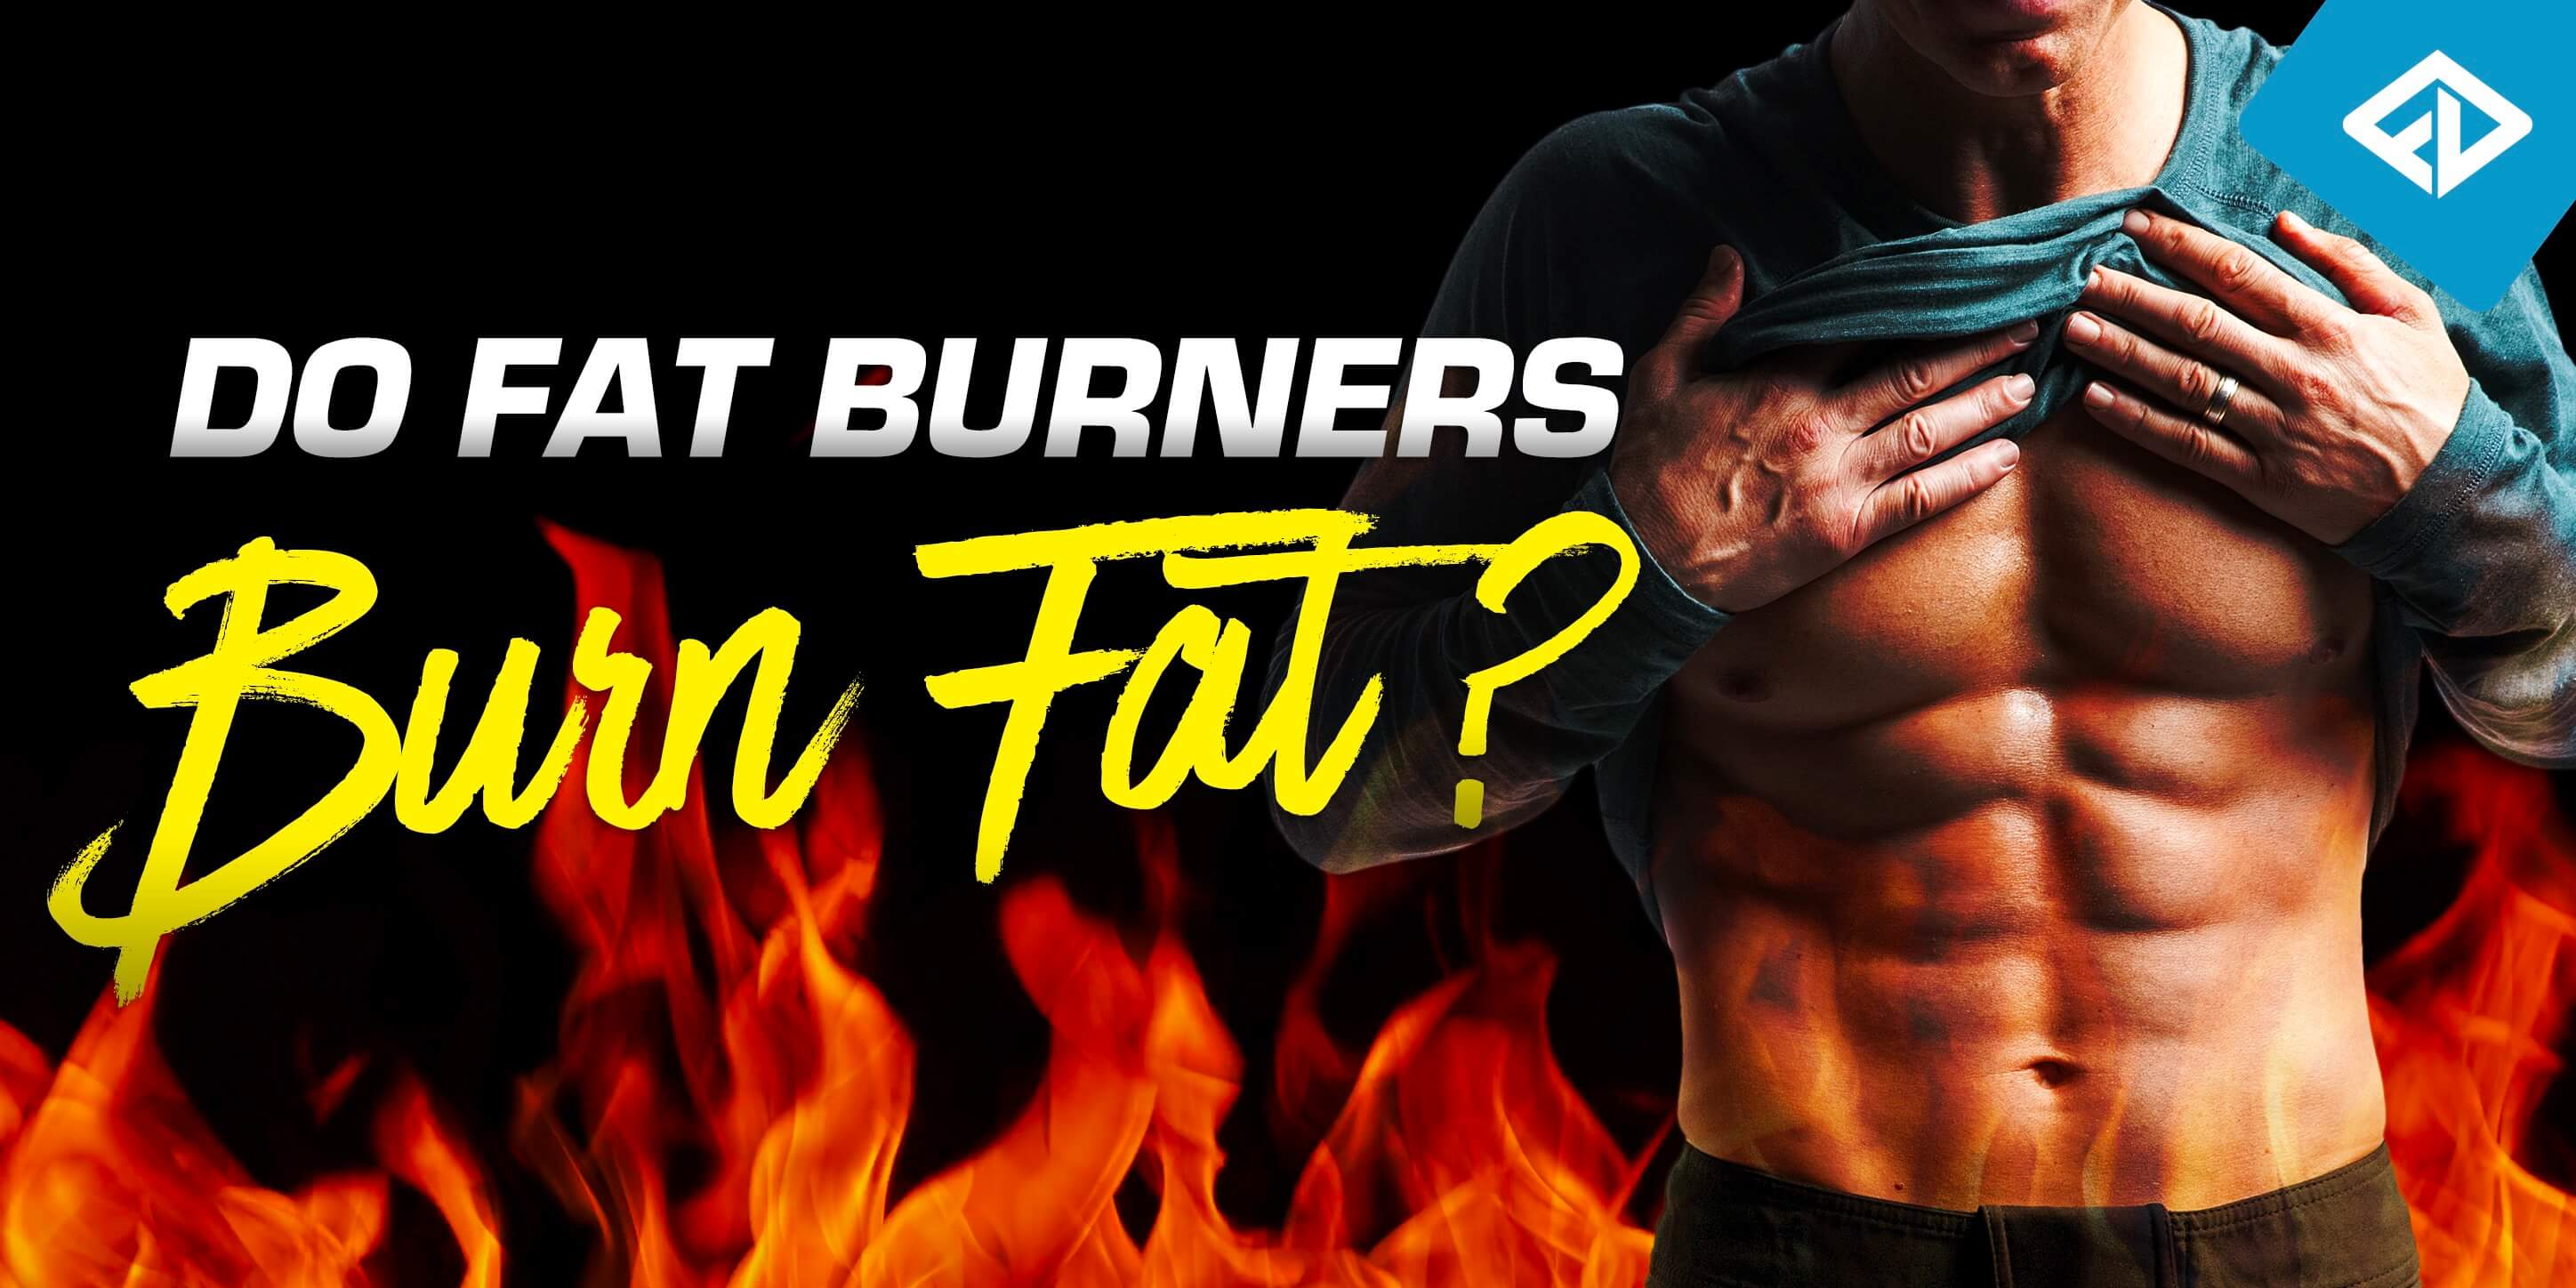 Do Fat Burners Burn Fat?